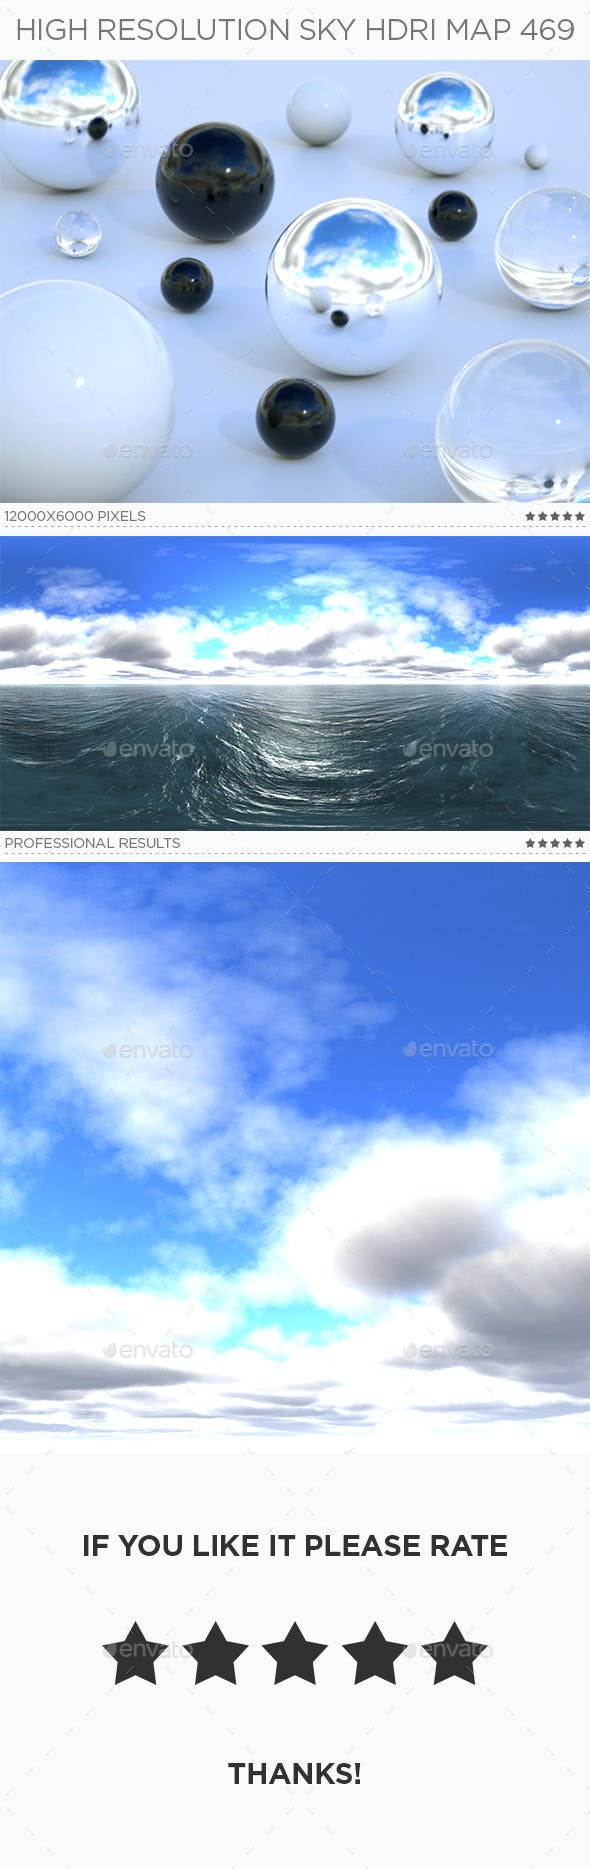 High Resolution Sky HDRi Map 469 - 3DOcean Item for Sale